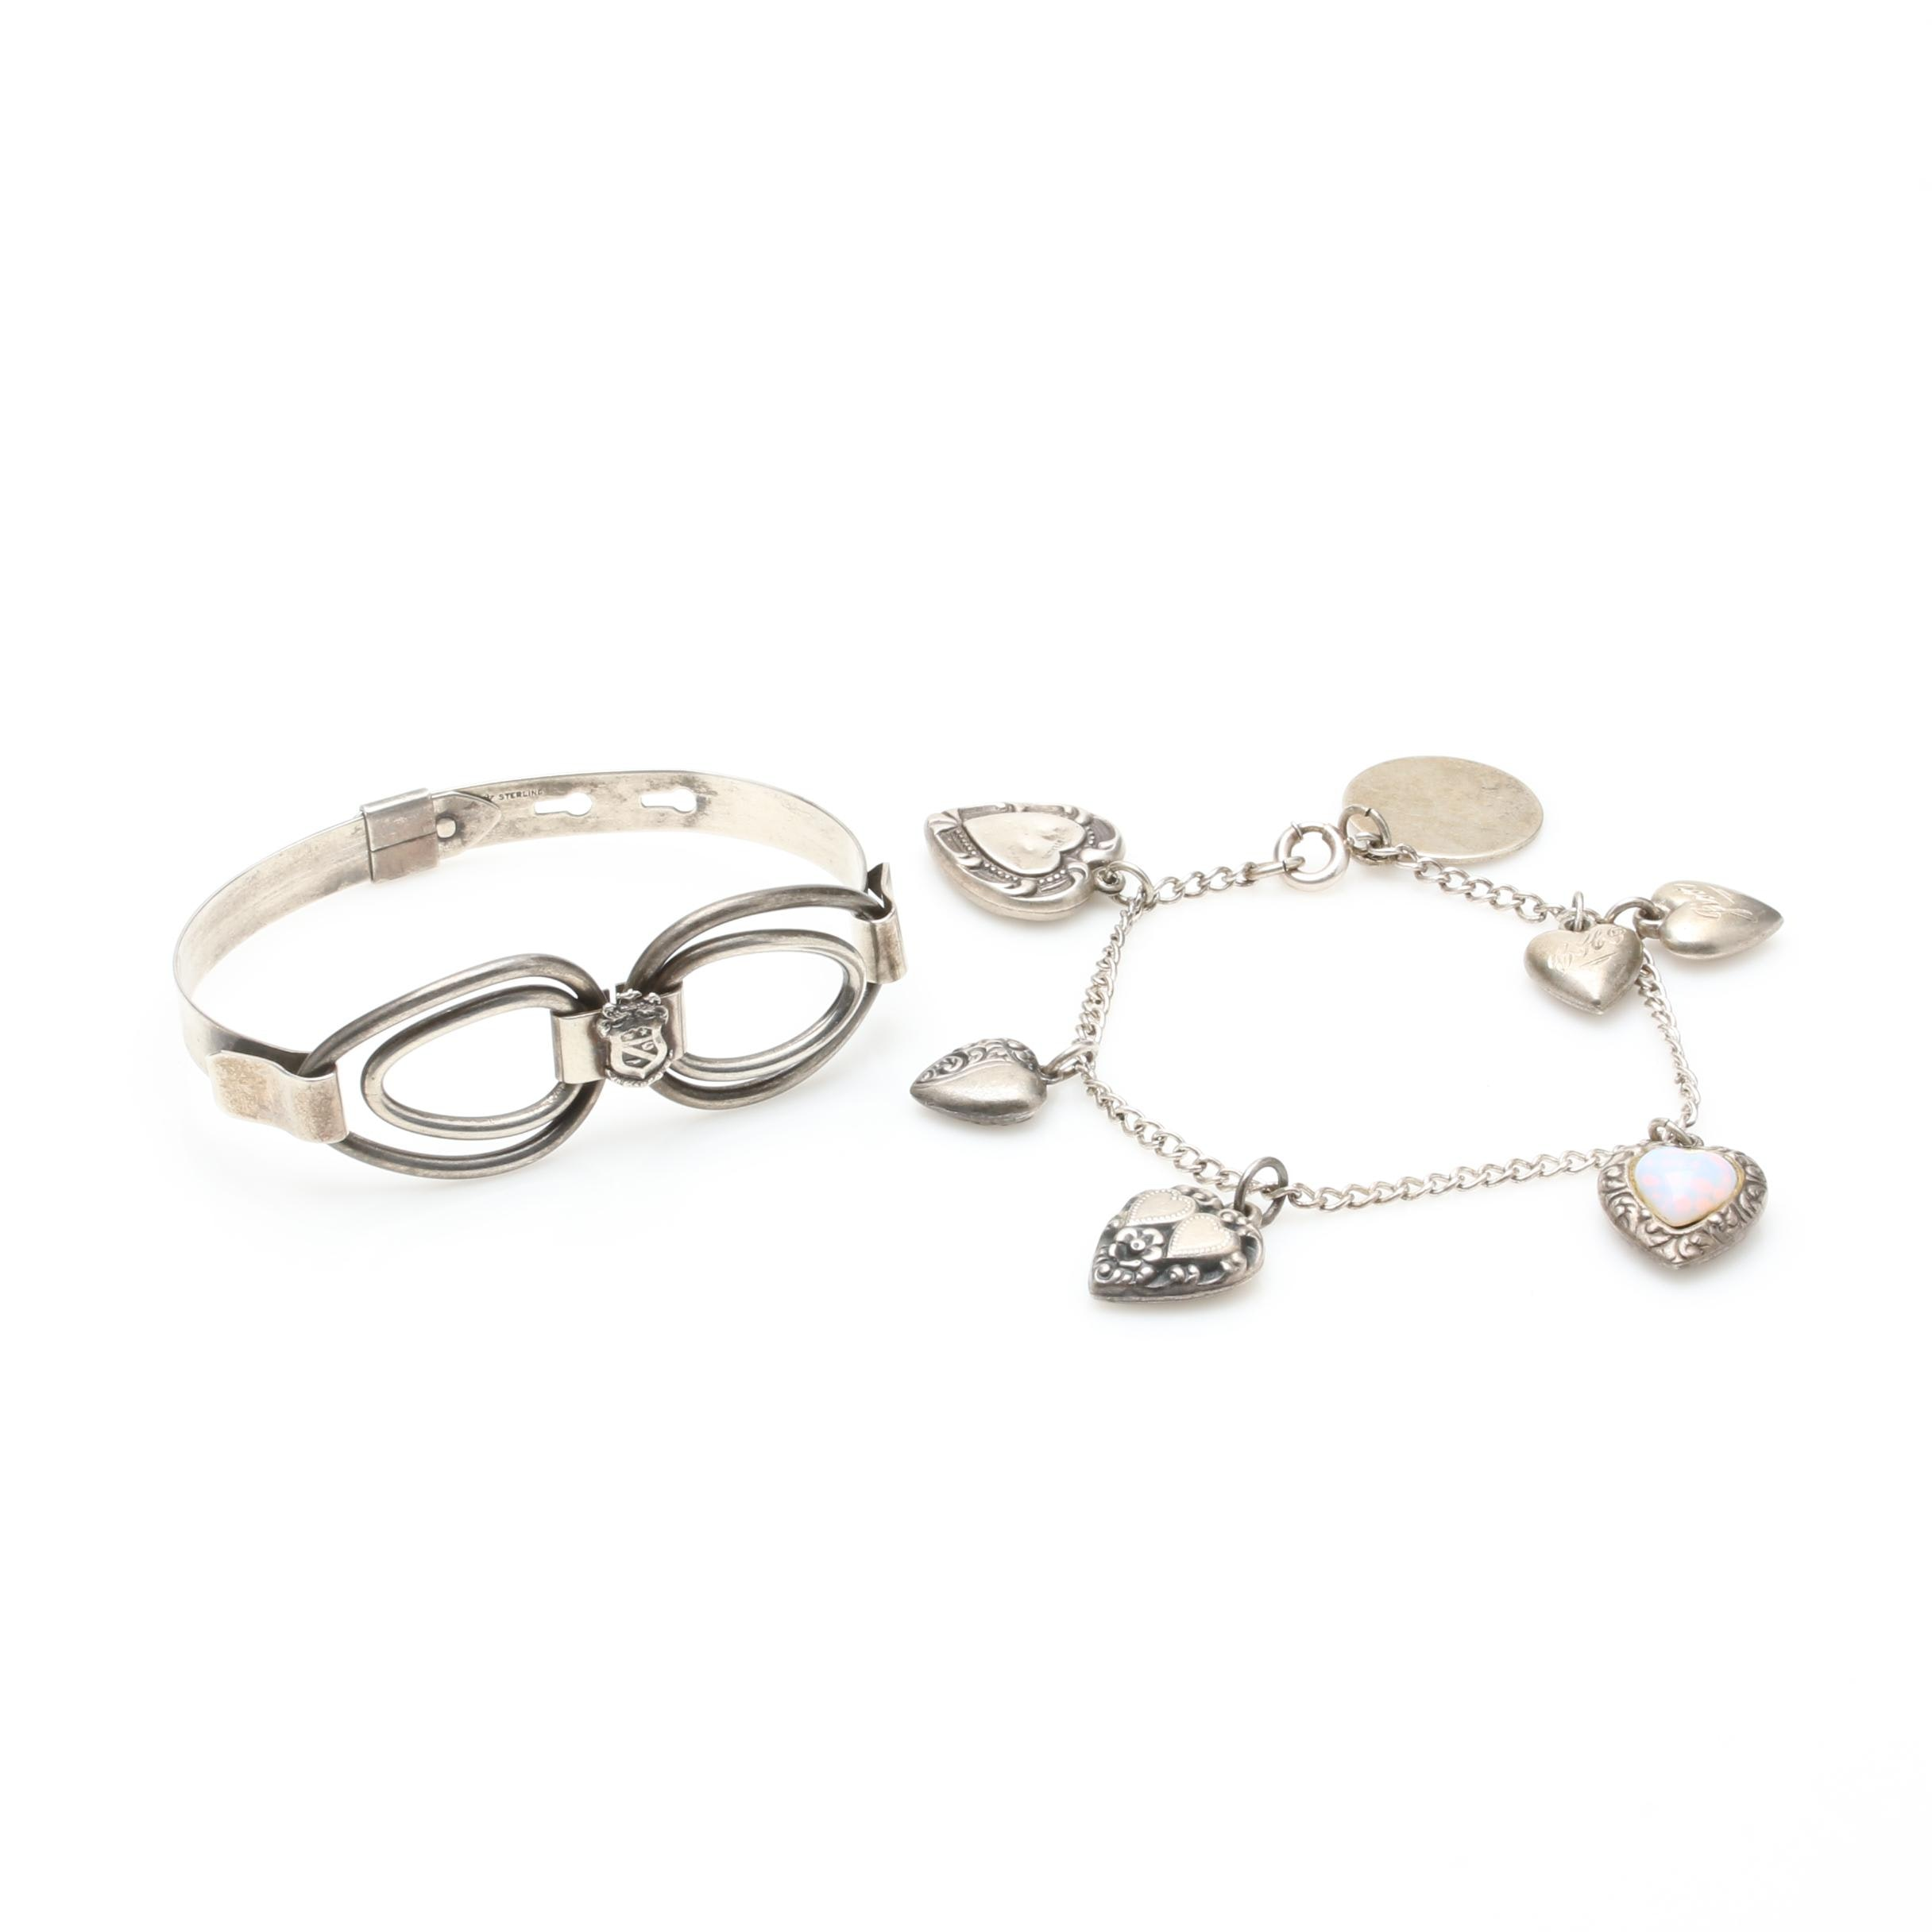 Sterling Silver Charm Bracelet and Buckle Bracelet Including Glass